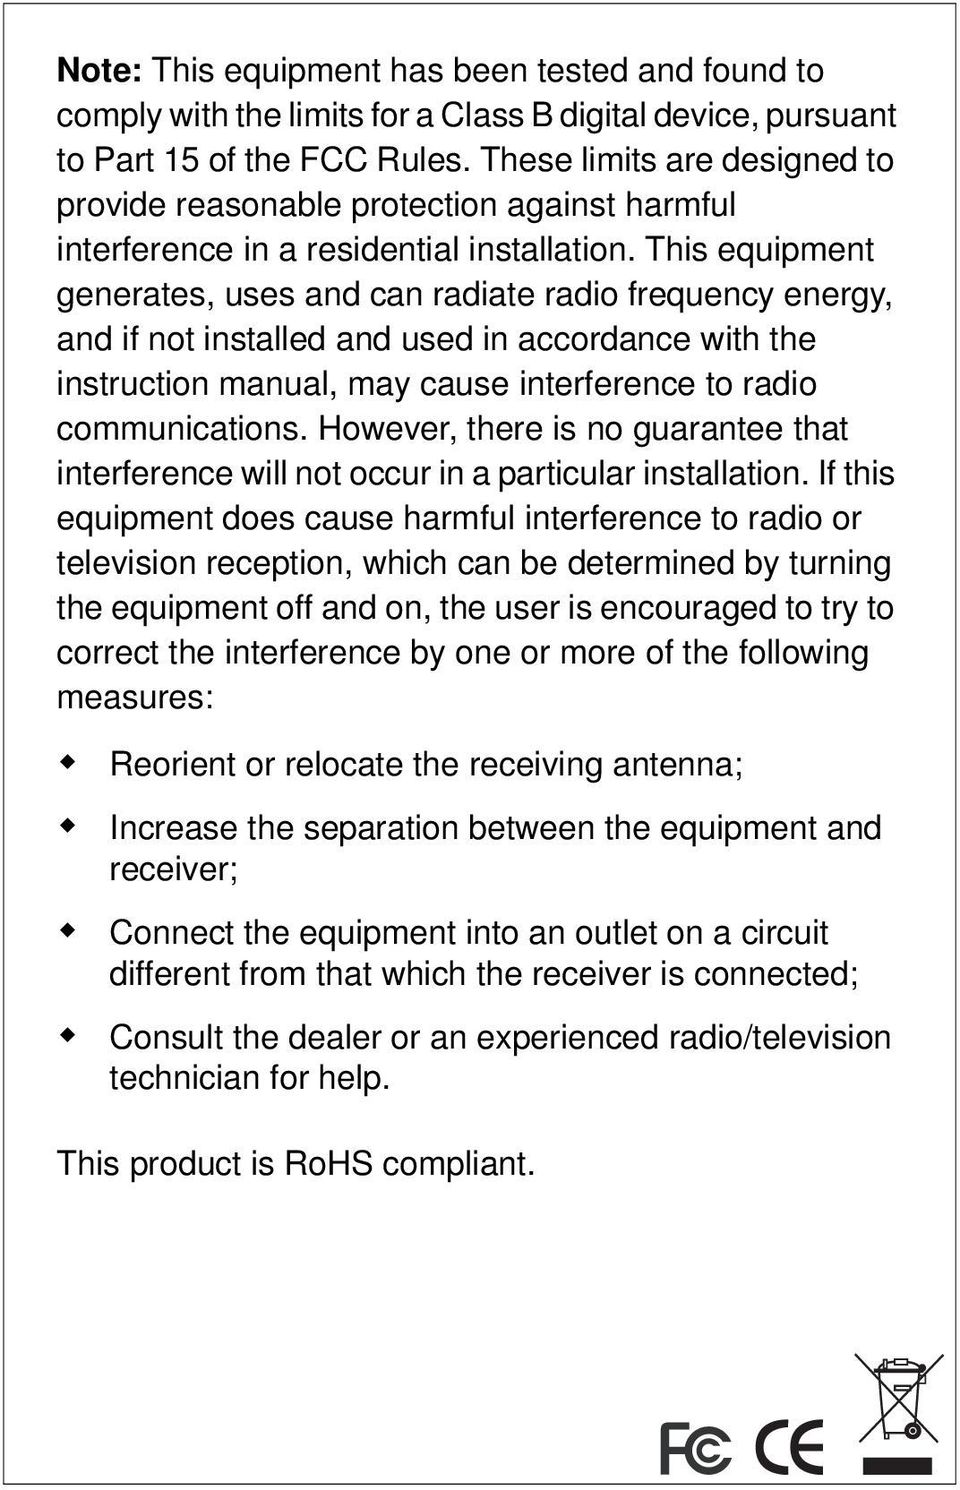 This equipment generates, uses and can radiate radio frequency energy, and if not installed and used in accordance with the instruction manual, may cause interference to radio communications.